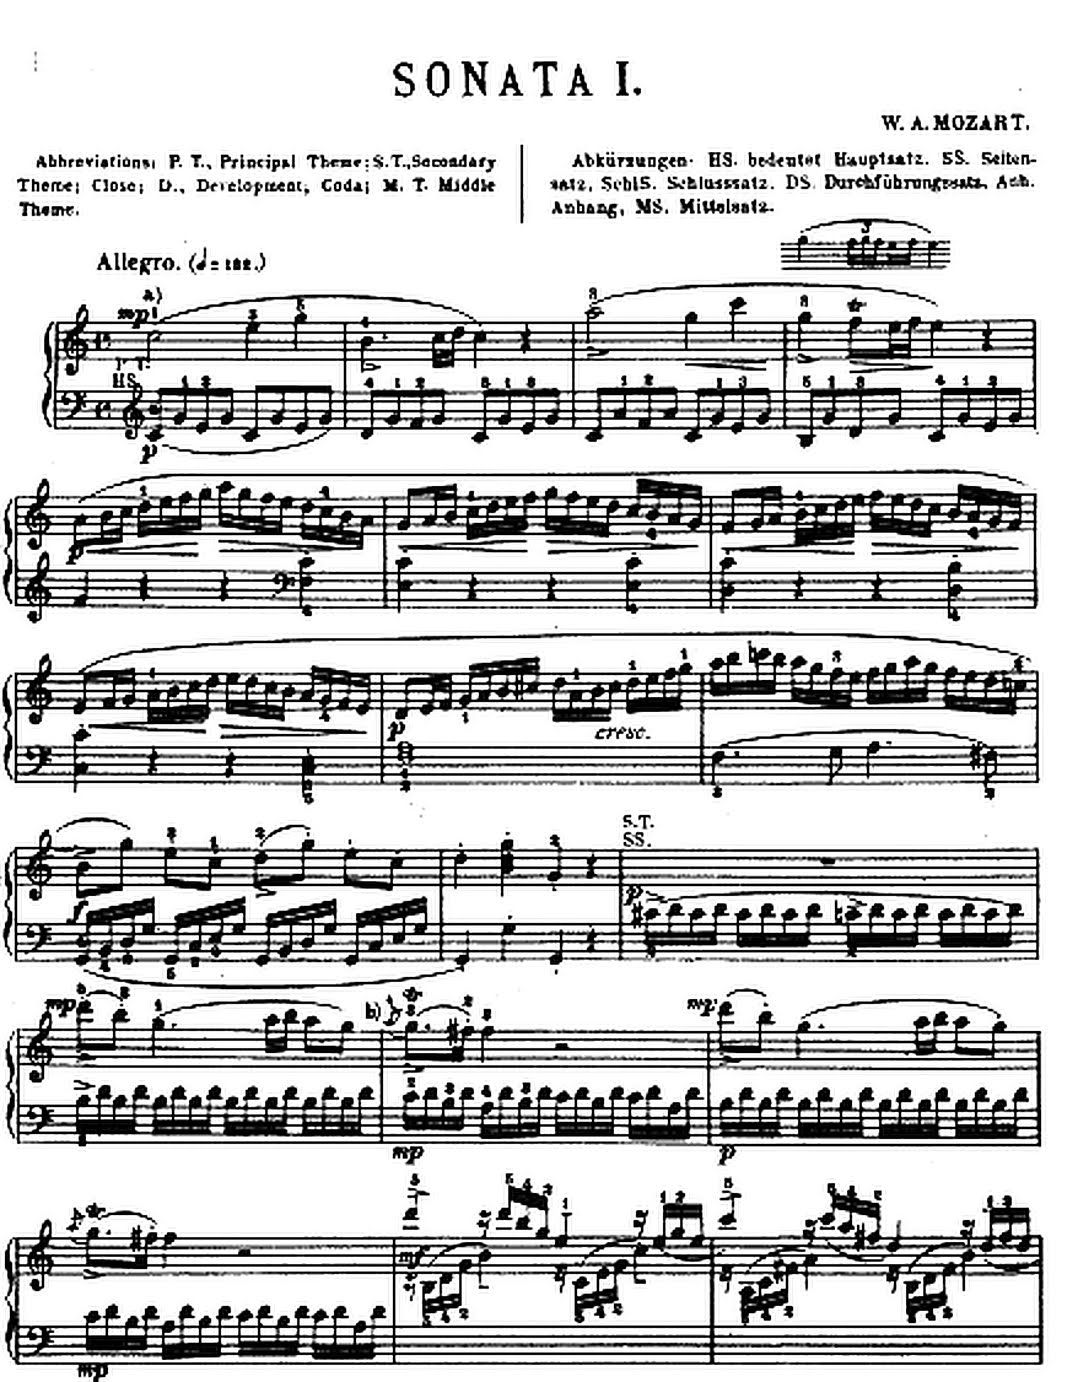 Hey Jason Heres Some Of The Piano Pieces That I Play Now Beat Is Way More Complicated Than Cello Im Gonna This At School Tomorrow